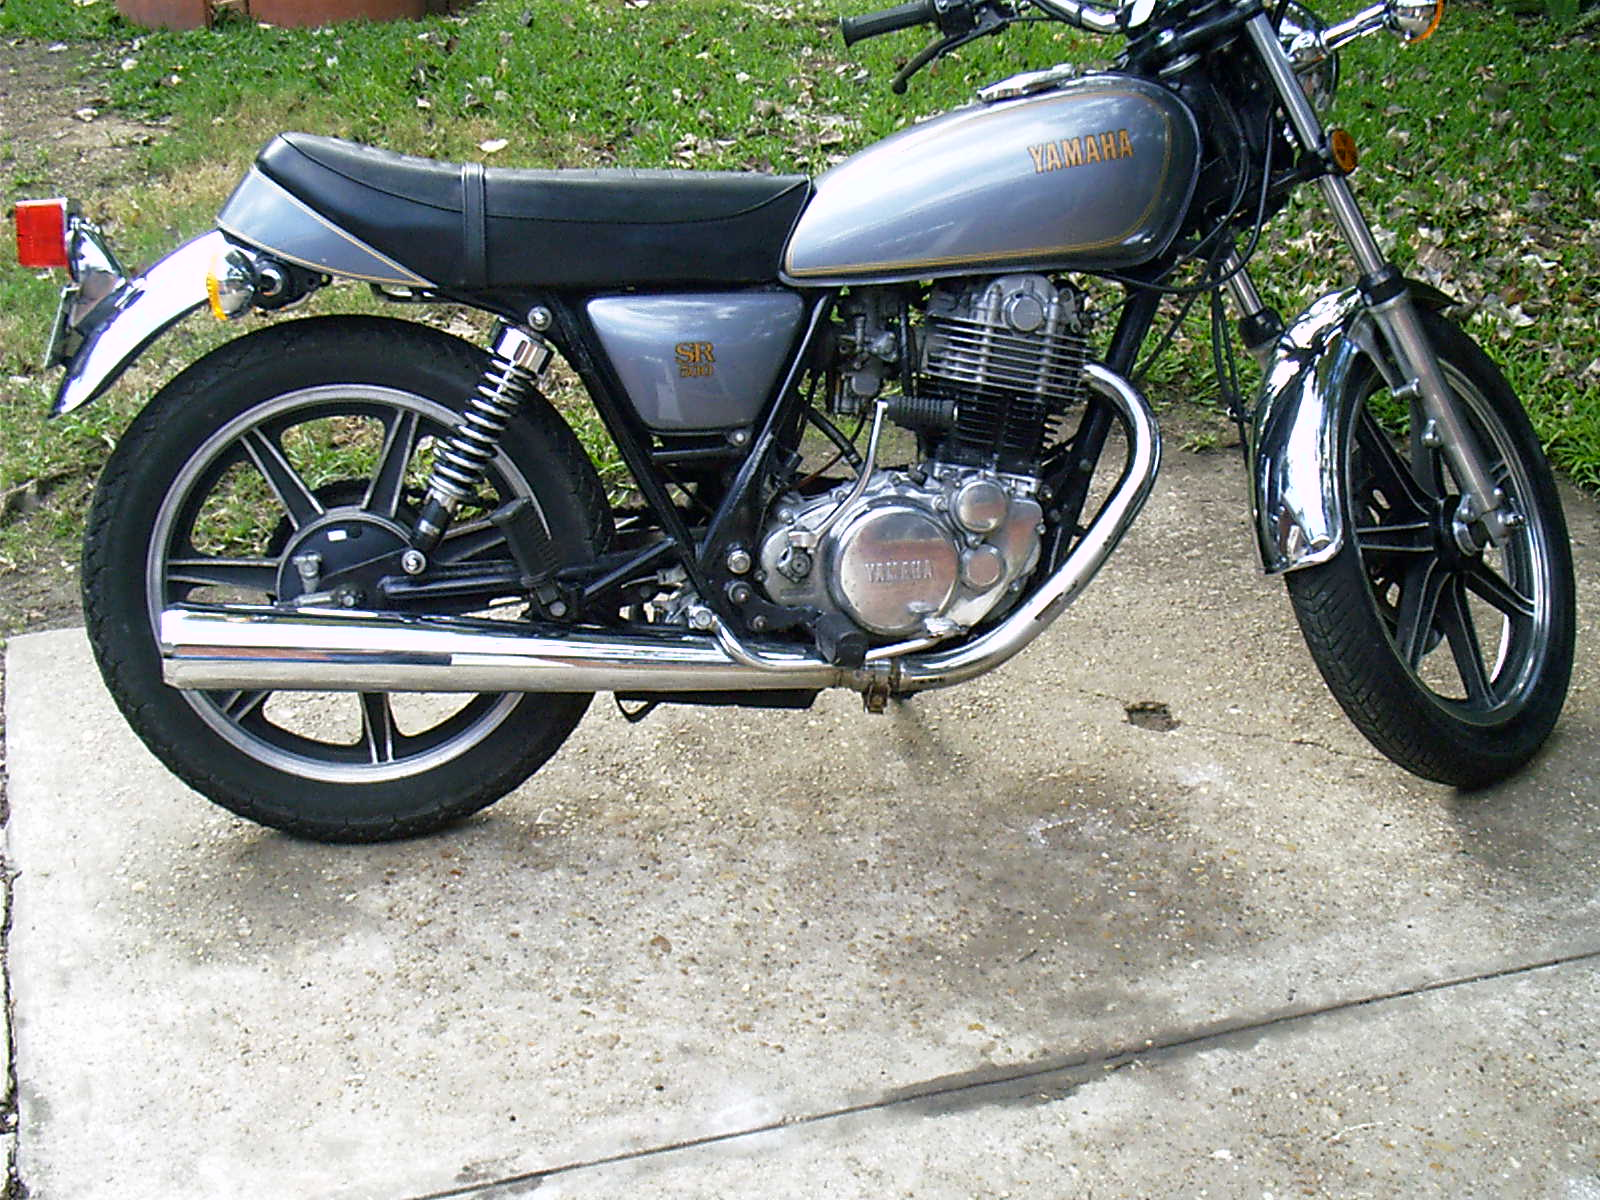 Yamaha SR 500 S (spoked wheels) #3